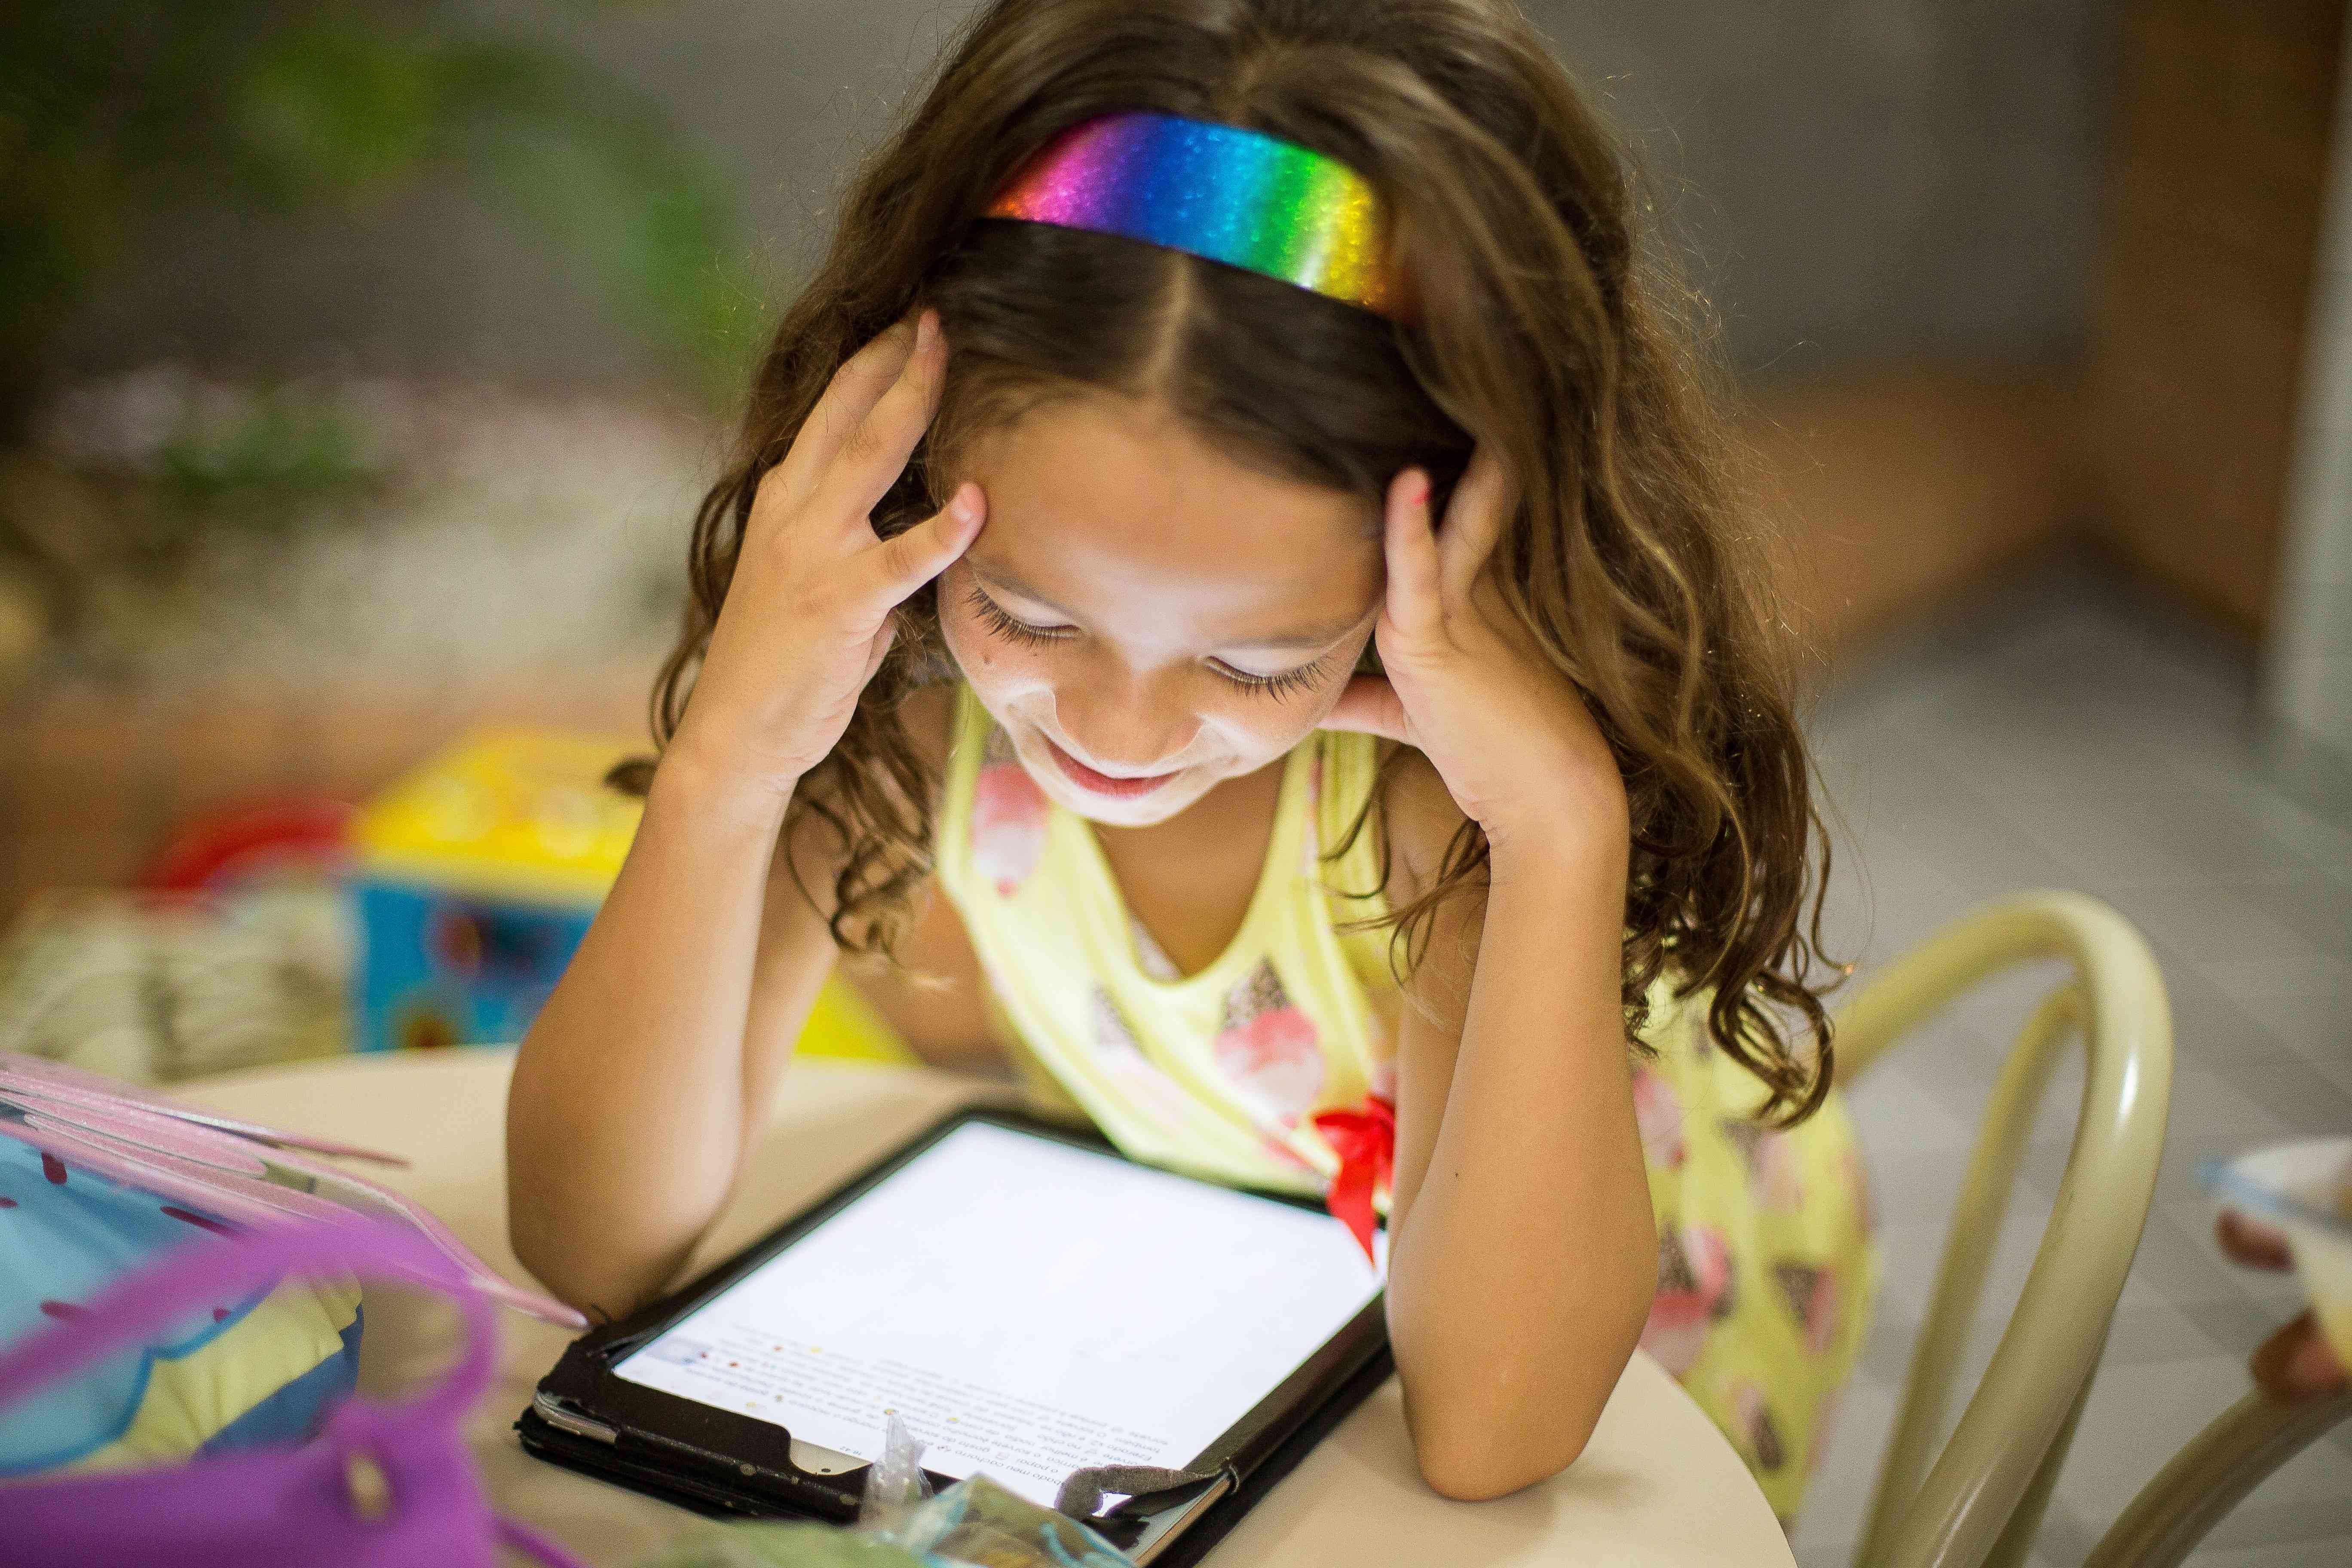 Picture of a young girl reading on a tablet